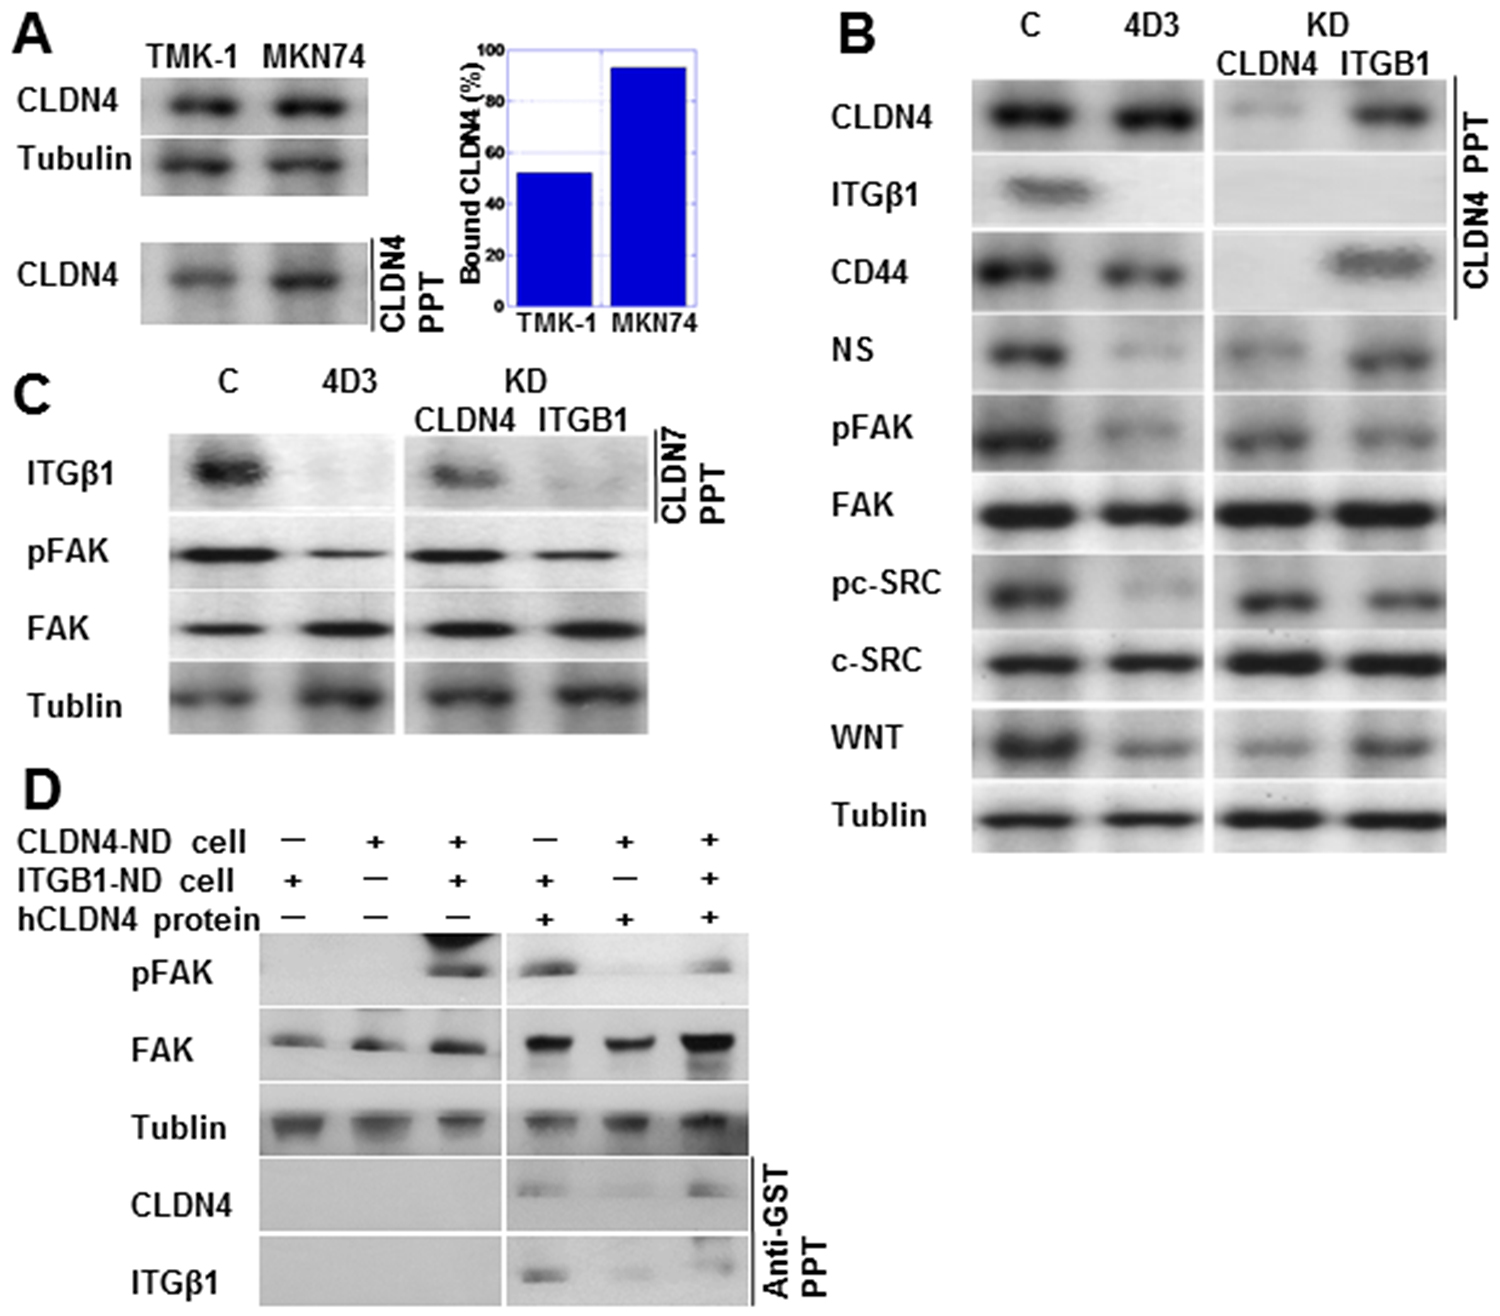 4D3 treatment inhibited the interaction between CLDN4 and integrin β1 (ITGβ1).